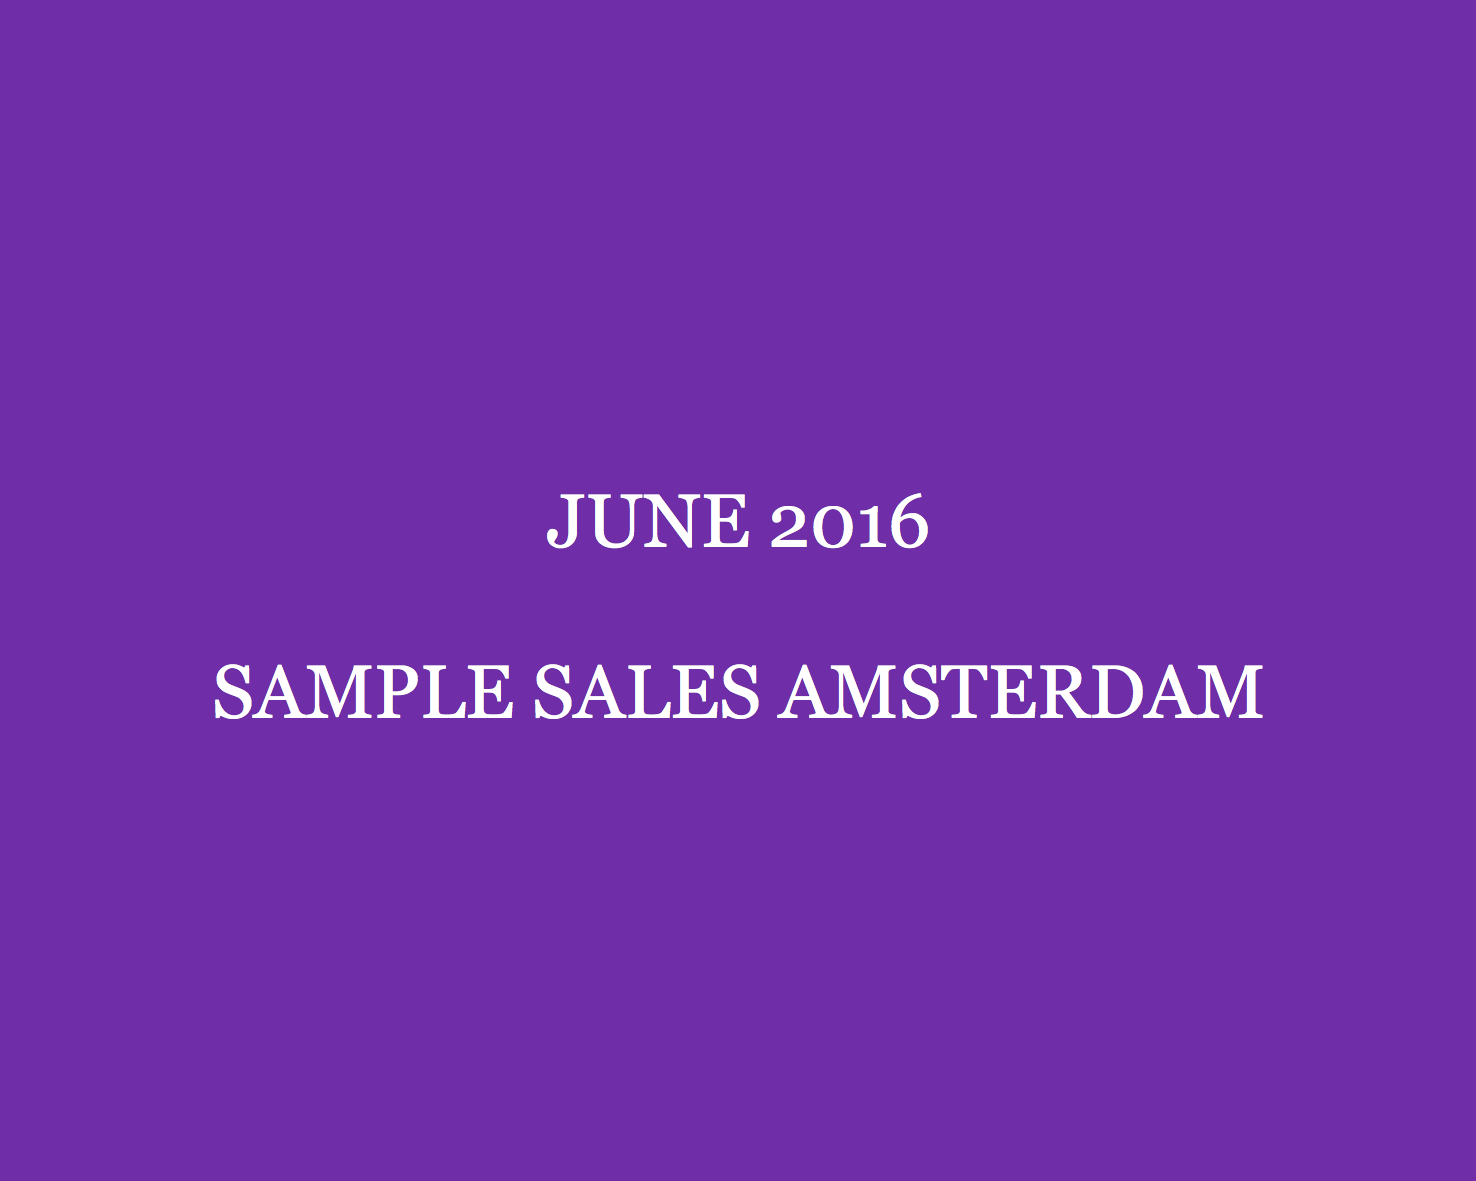 june-2016-sample-sales-amsterdam-style-barista-amsterdam-sample-sales-april-2016-sample-sales-amsterdam